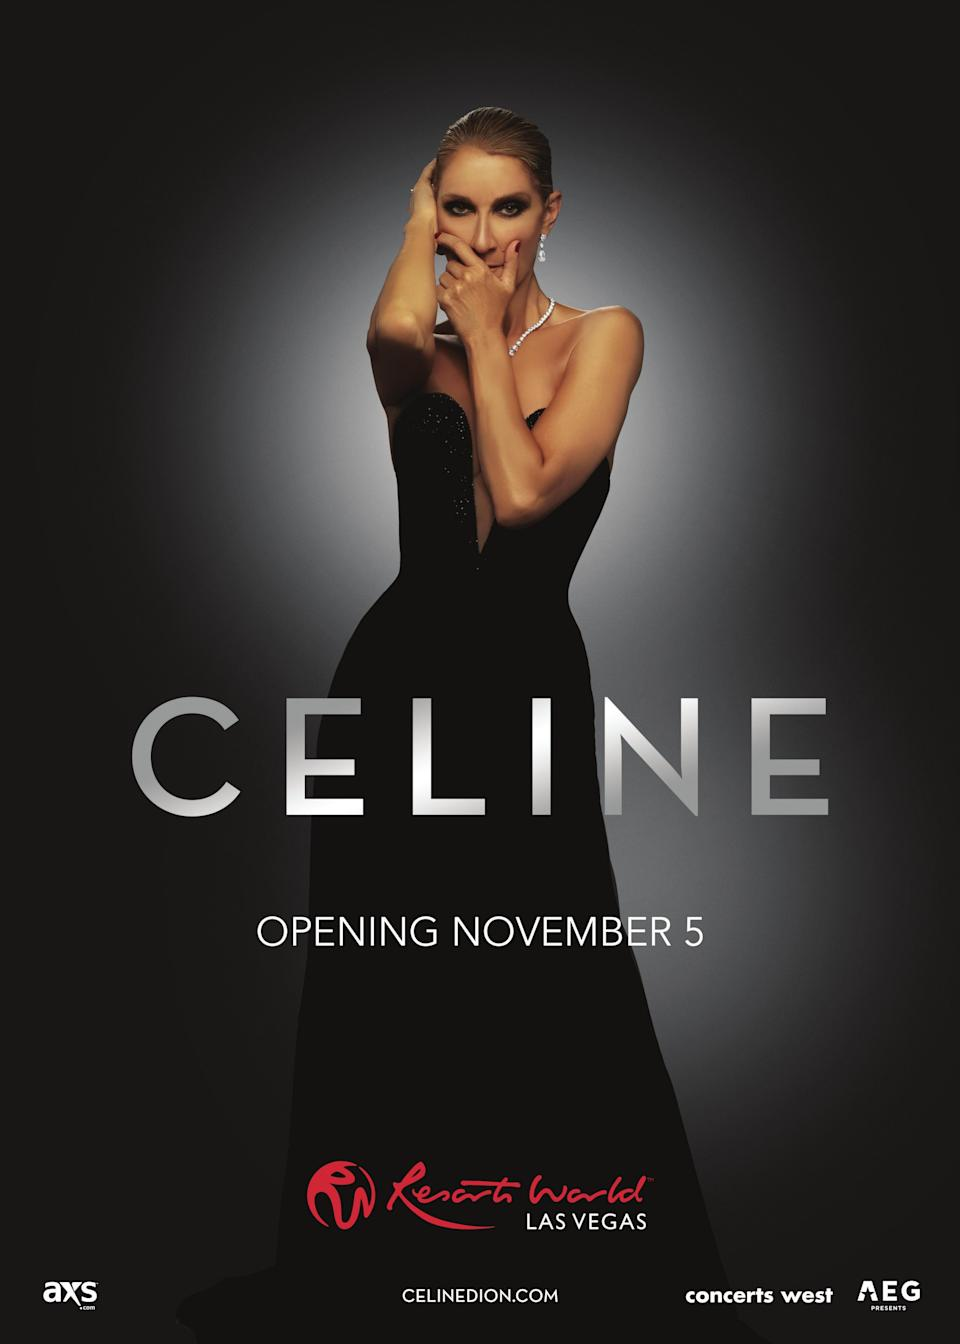 A poster for Celine Dion's upcoming Las Vegas residency.